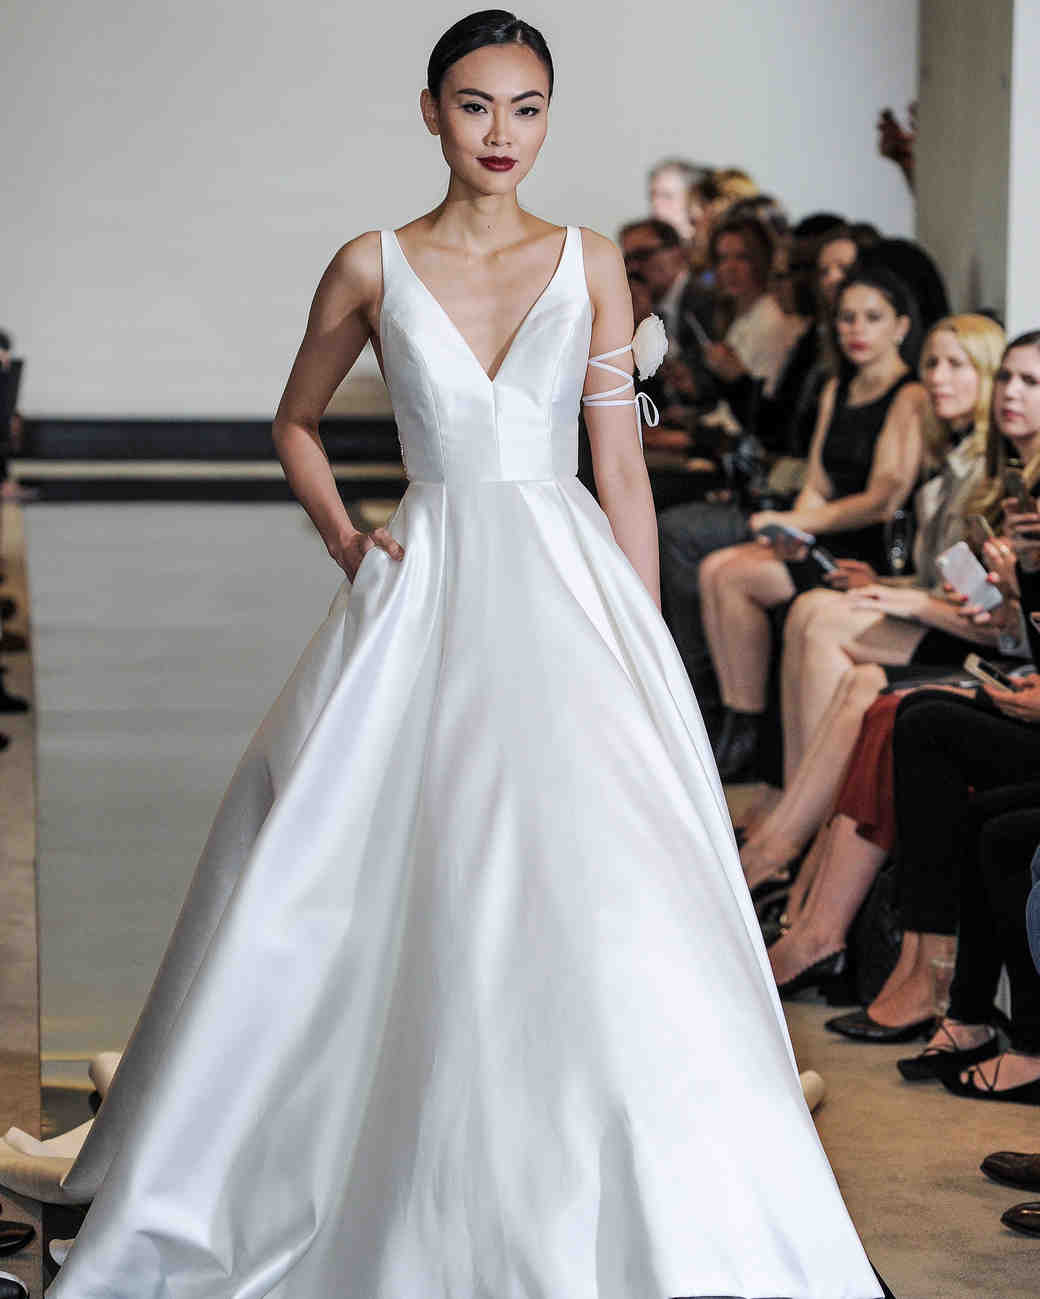 Martha Stewart Wedding Gowns